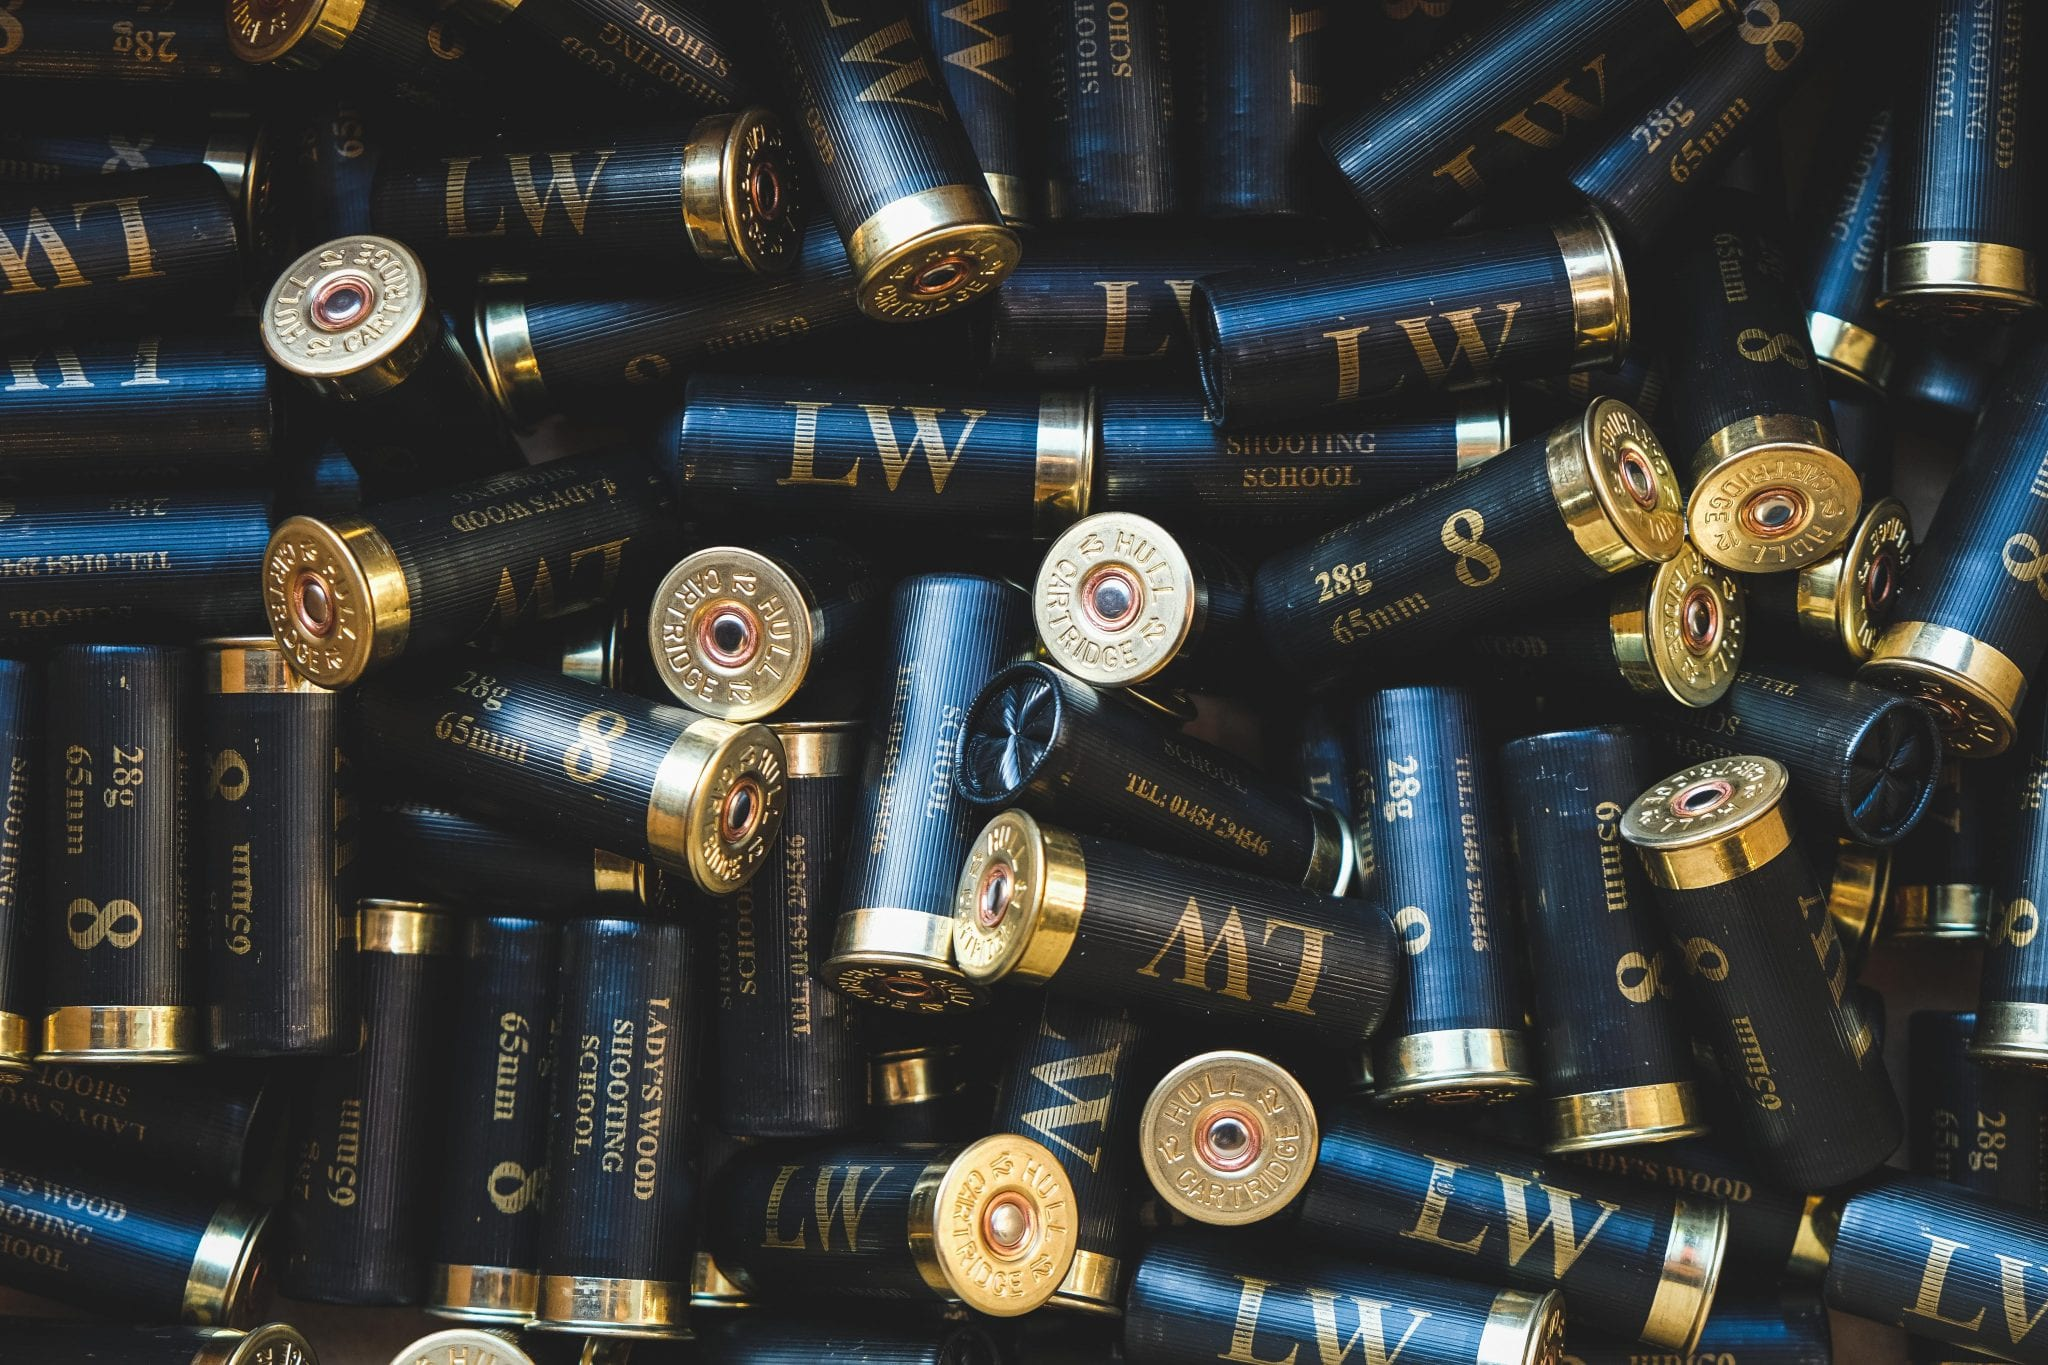 Permitted cartridges at Lady's Wood Shooting School